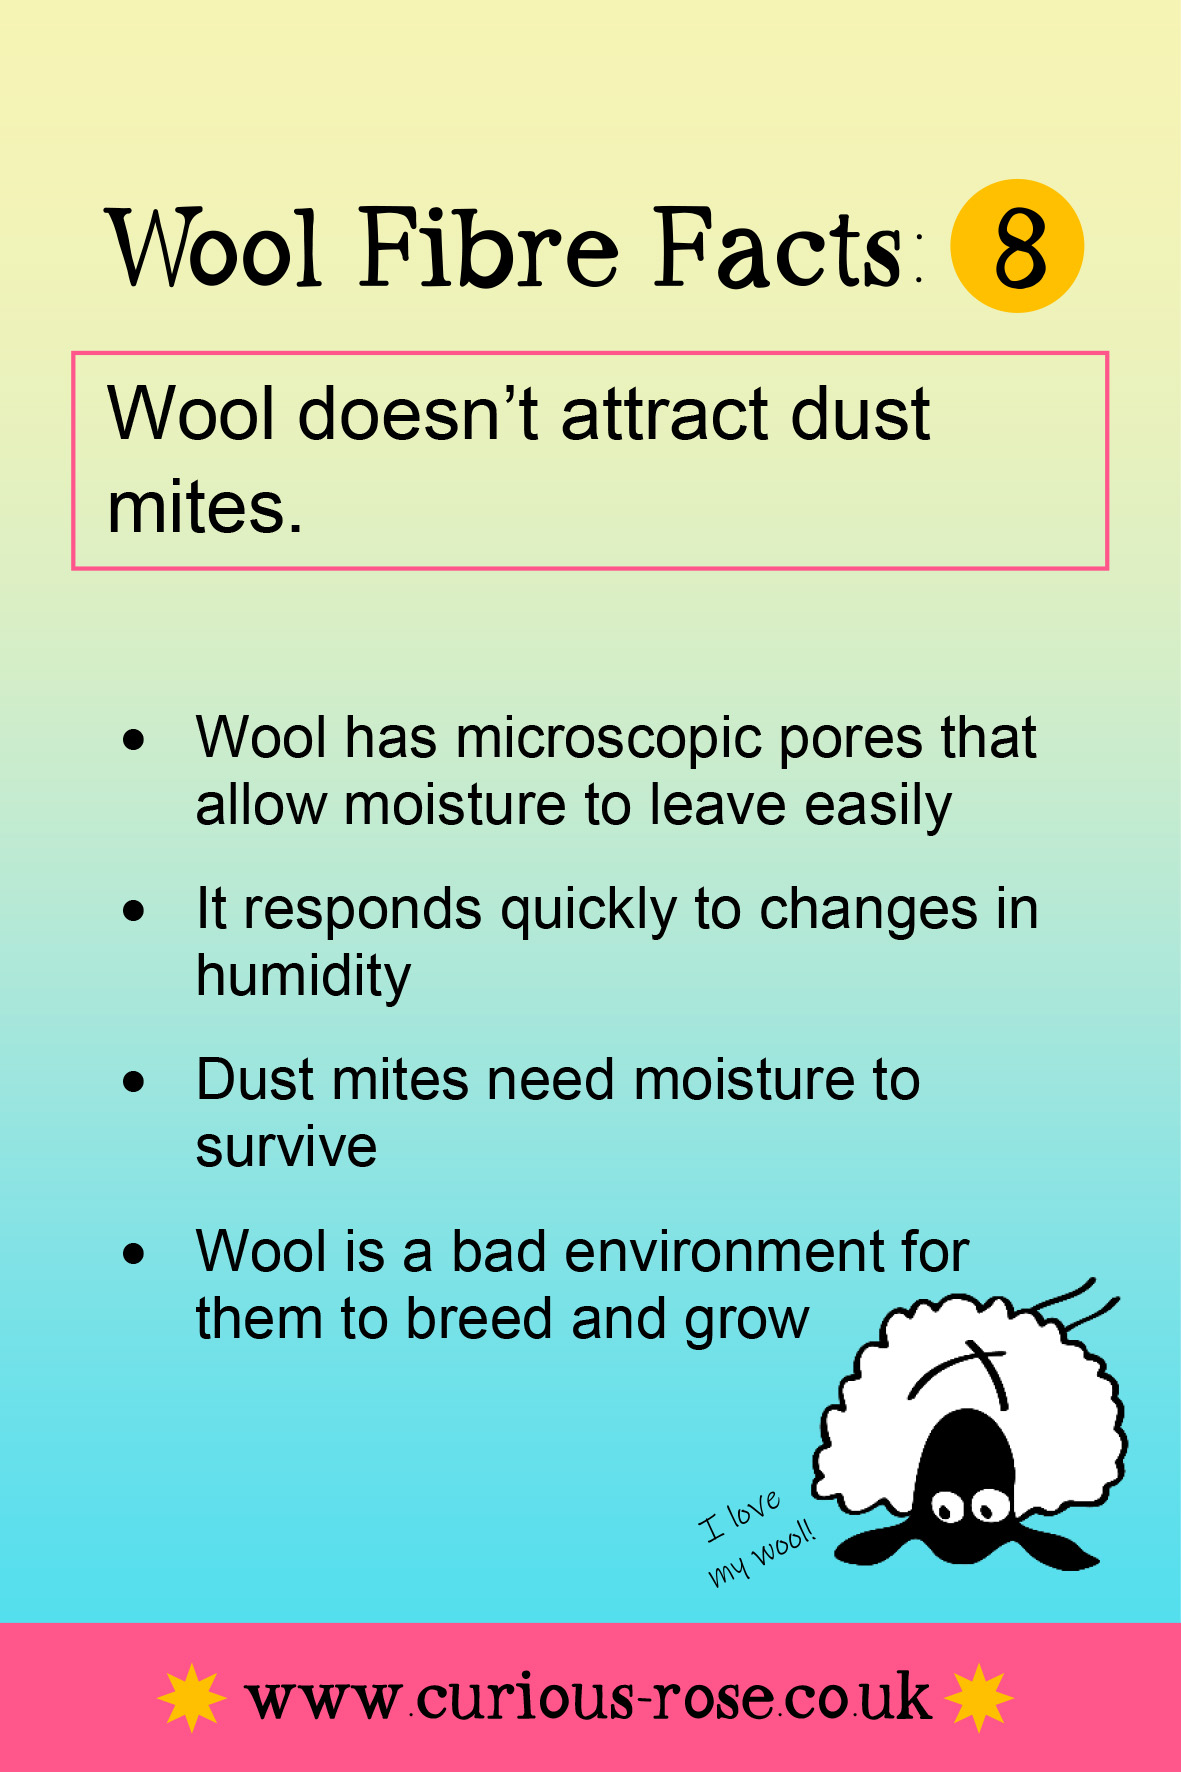 Wool Fibre Facts 8.jpg